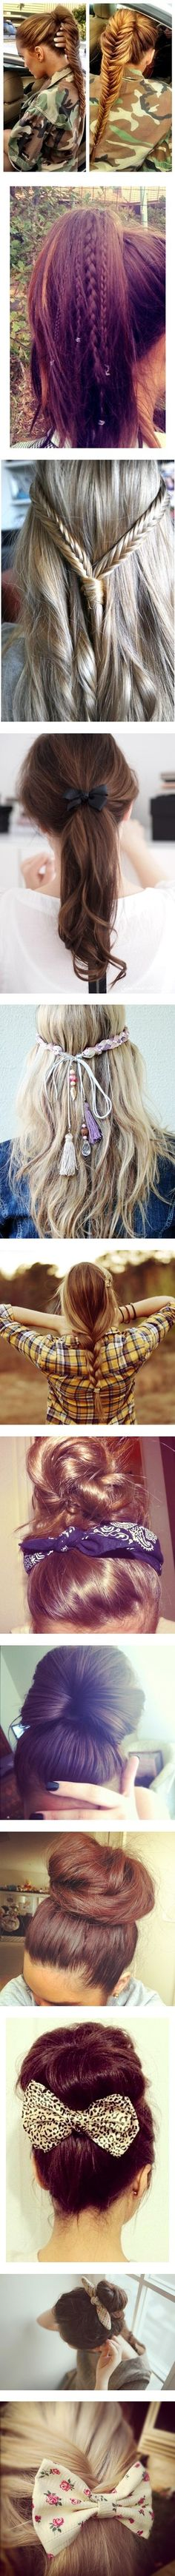 """""""Hair♥"""" by breoniaelkstone ❤ liked on Polyvore"""